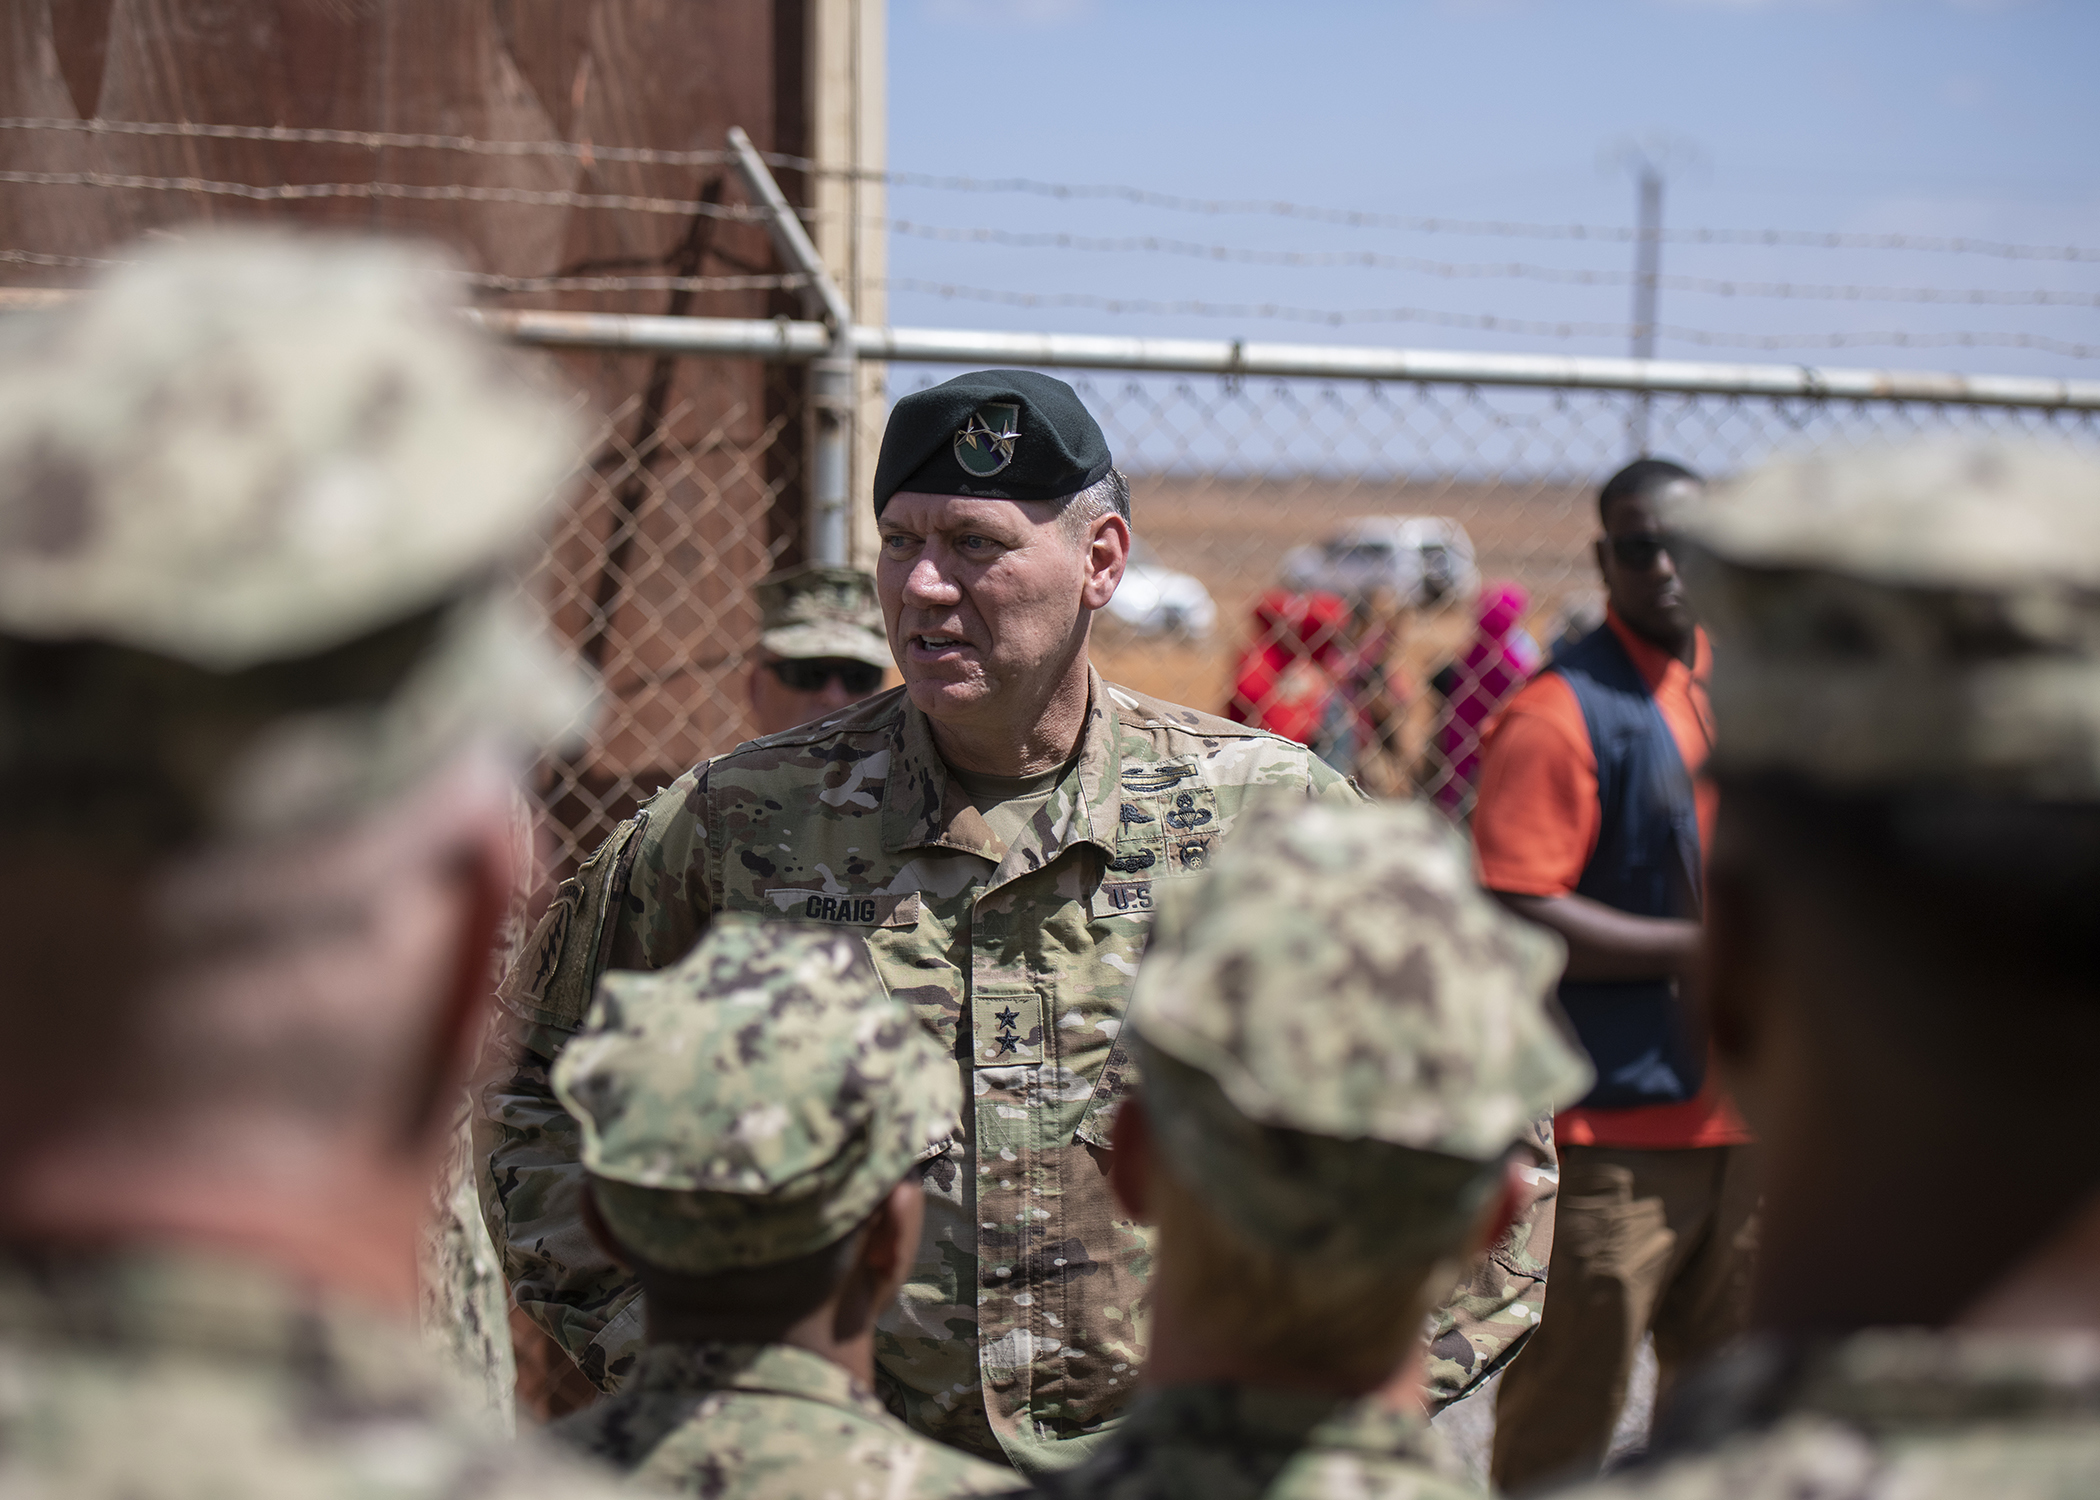 U.S. Army Maj. Gen. James D. Craig, commanding general, Combined Joint Task Force-Horn of Africa (CJTF-HOA), speaks to U.S. Navy Seabees from Naval Mobile Construction Battalion 1, assigned to CJTF-HOA, during the Ali Oune Medial Clinic ribbon cutting ceremony in Ali Oune, Djibouti, Jan. 31, 2019. The clinic, which the Seabees have been working to complete for five months, is intended to enhance the Ministry of Health for Djibouti's ability to provide basic medical, birth and after care to the Ali Oune village and its more than 1,000 residents and rural neighbors. (U.S. Air Force photo by Tech. Sgt. Shawn Nickel)